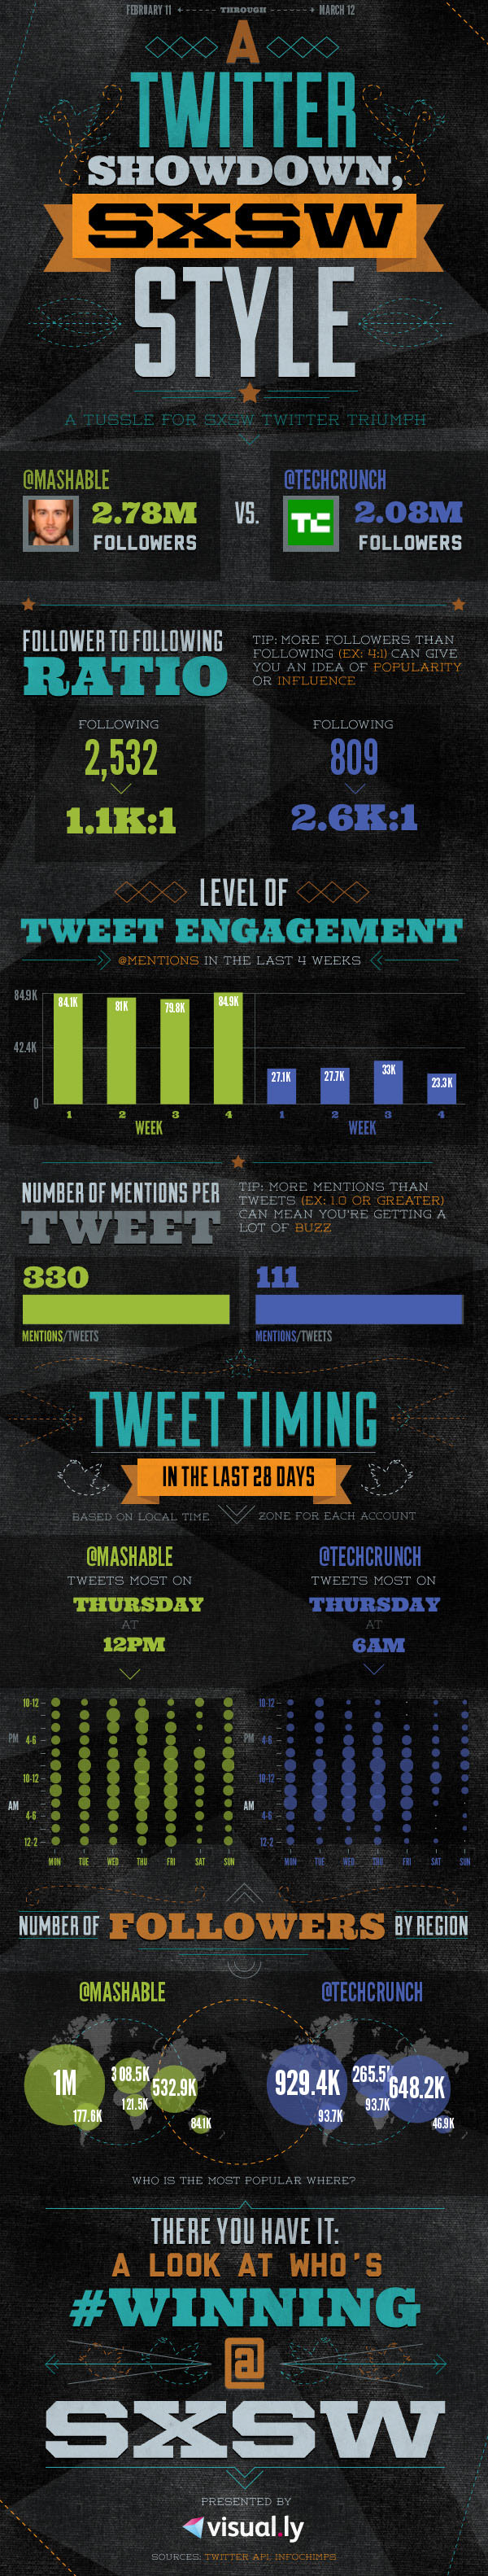 Mashable vs. TechCrunch: Showdown Statistics [Infographic]